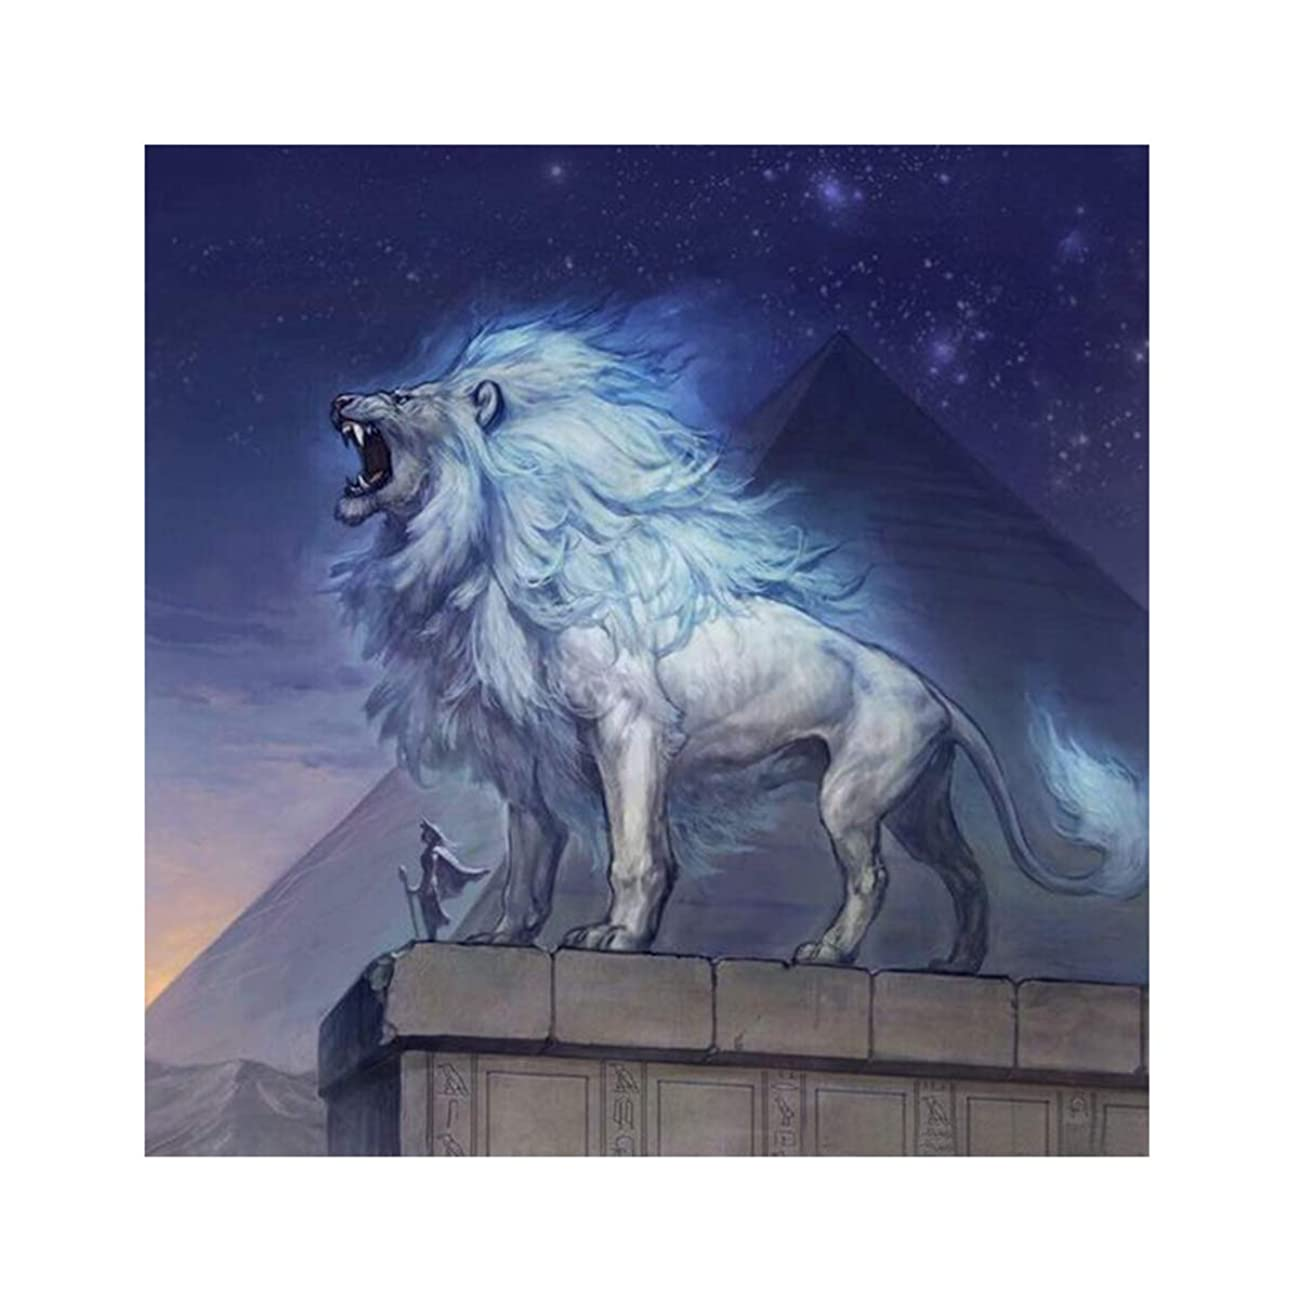 5D Diamond Painting for Adult DIY Full Drill Diamond Art Kits Square Rhinestone Embroidery by Numbers Roaring Lion 11.8X15.7inch